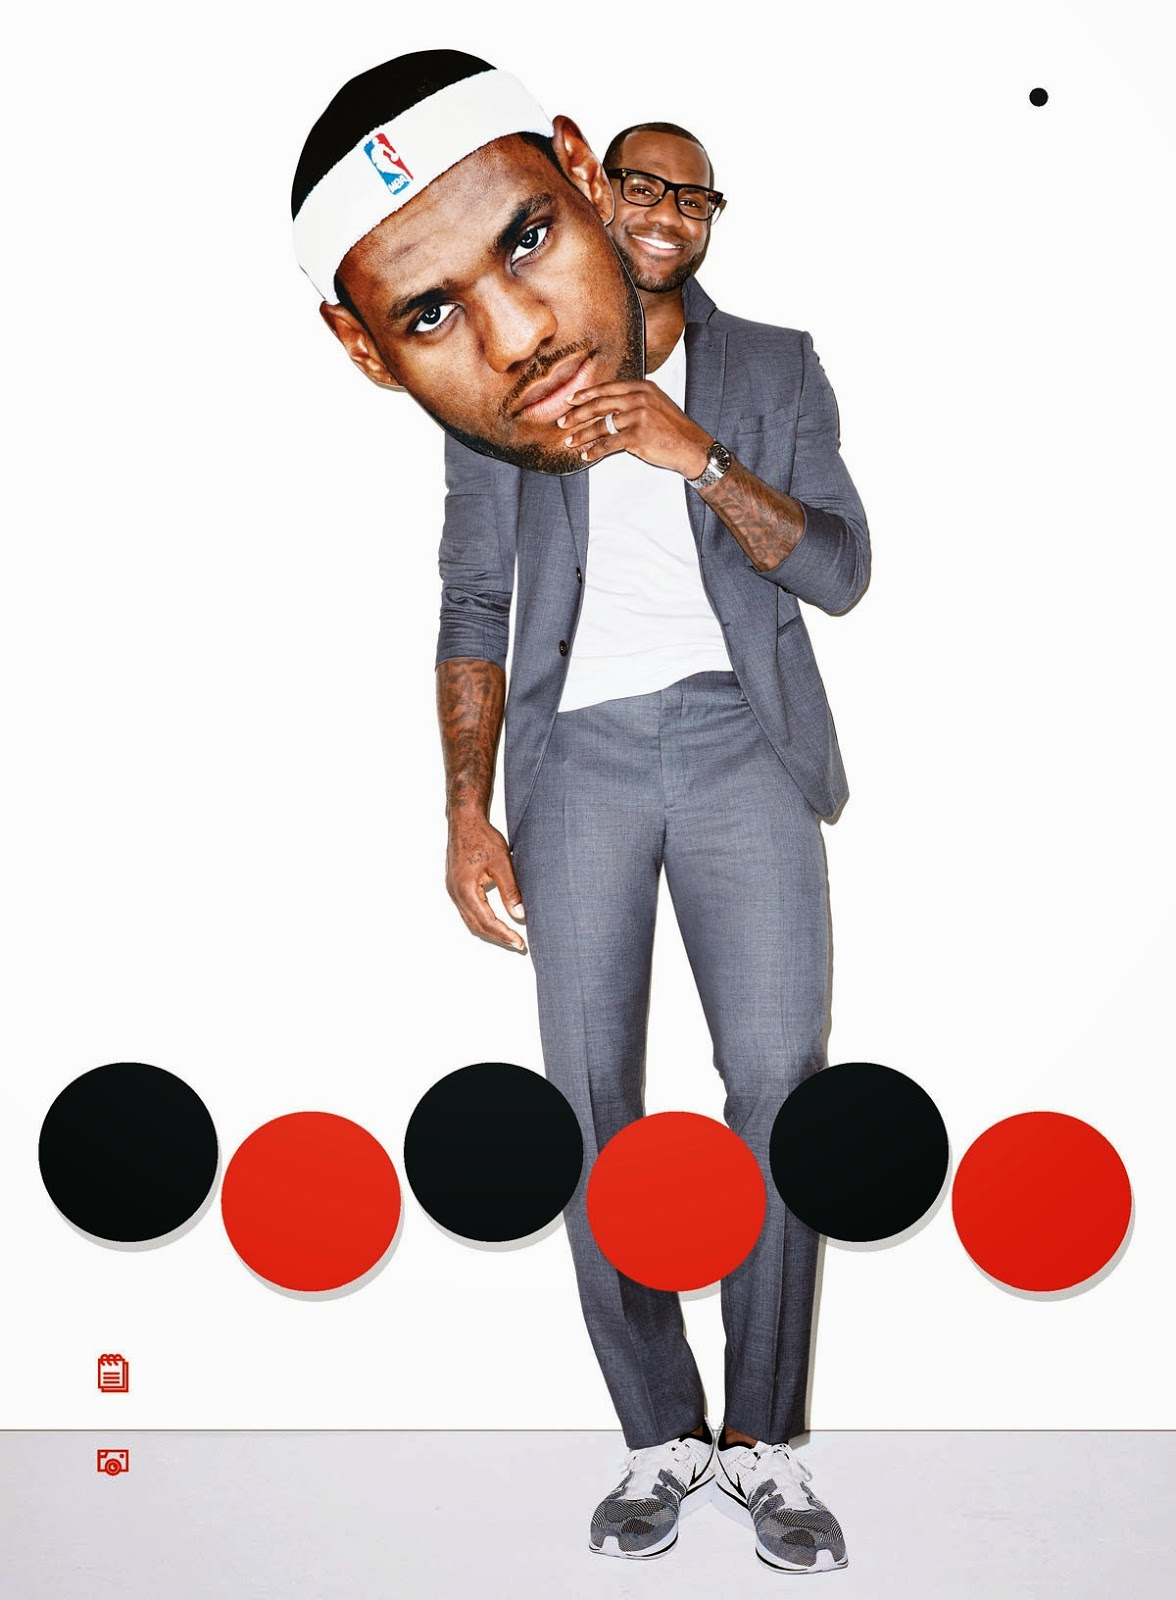 Lebron James Cover Editorial GQ USA March 2014 by Terry Richardson (3)